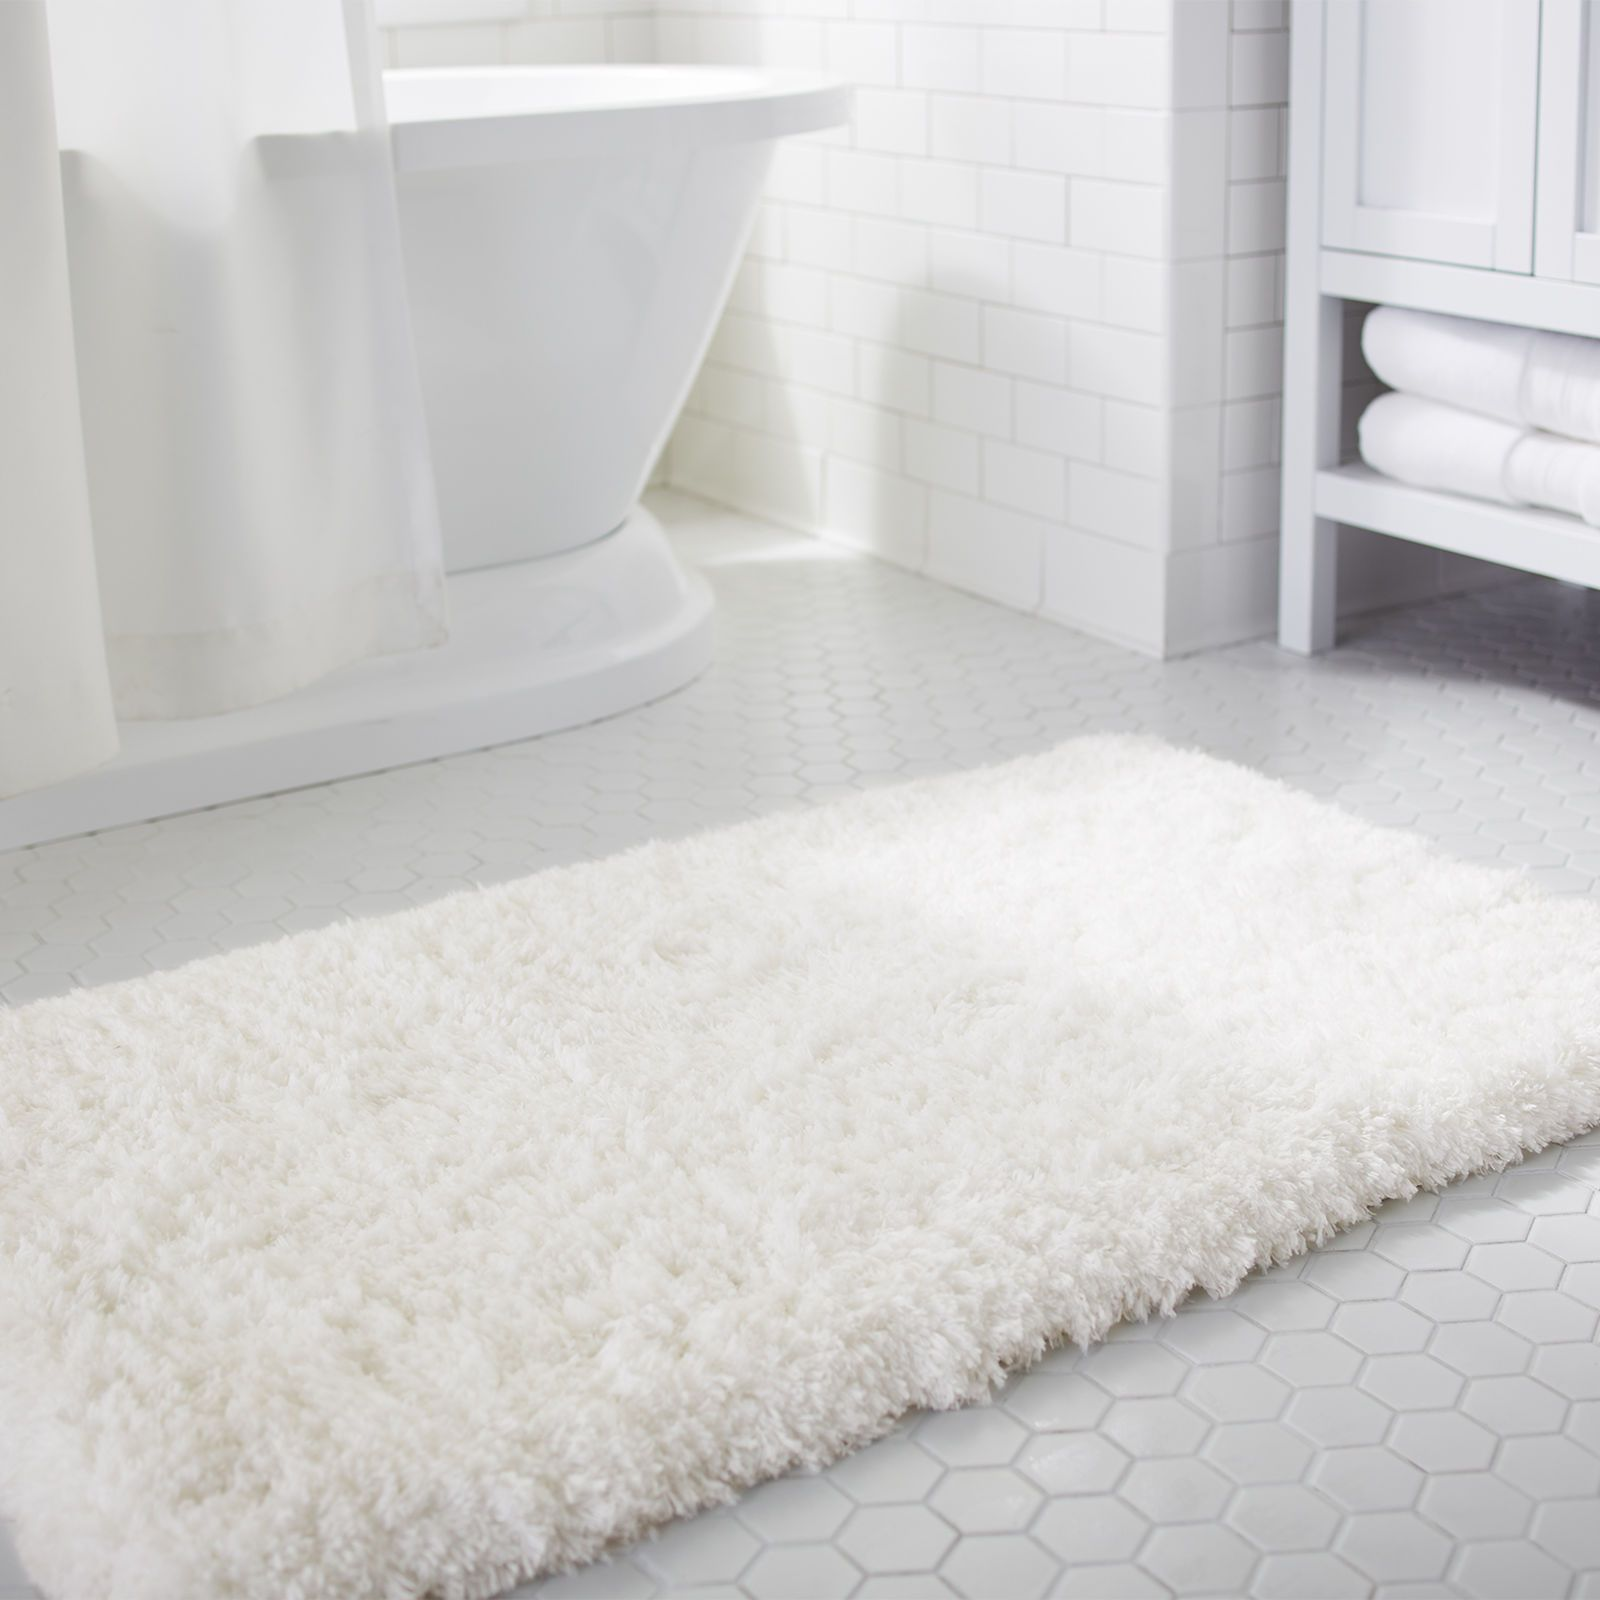 Pin By Sarah Persinger On Future Home White Bath Rugs Luxury Bath Mats White Bathroom Rug